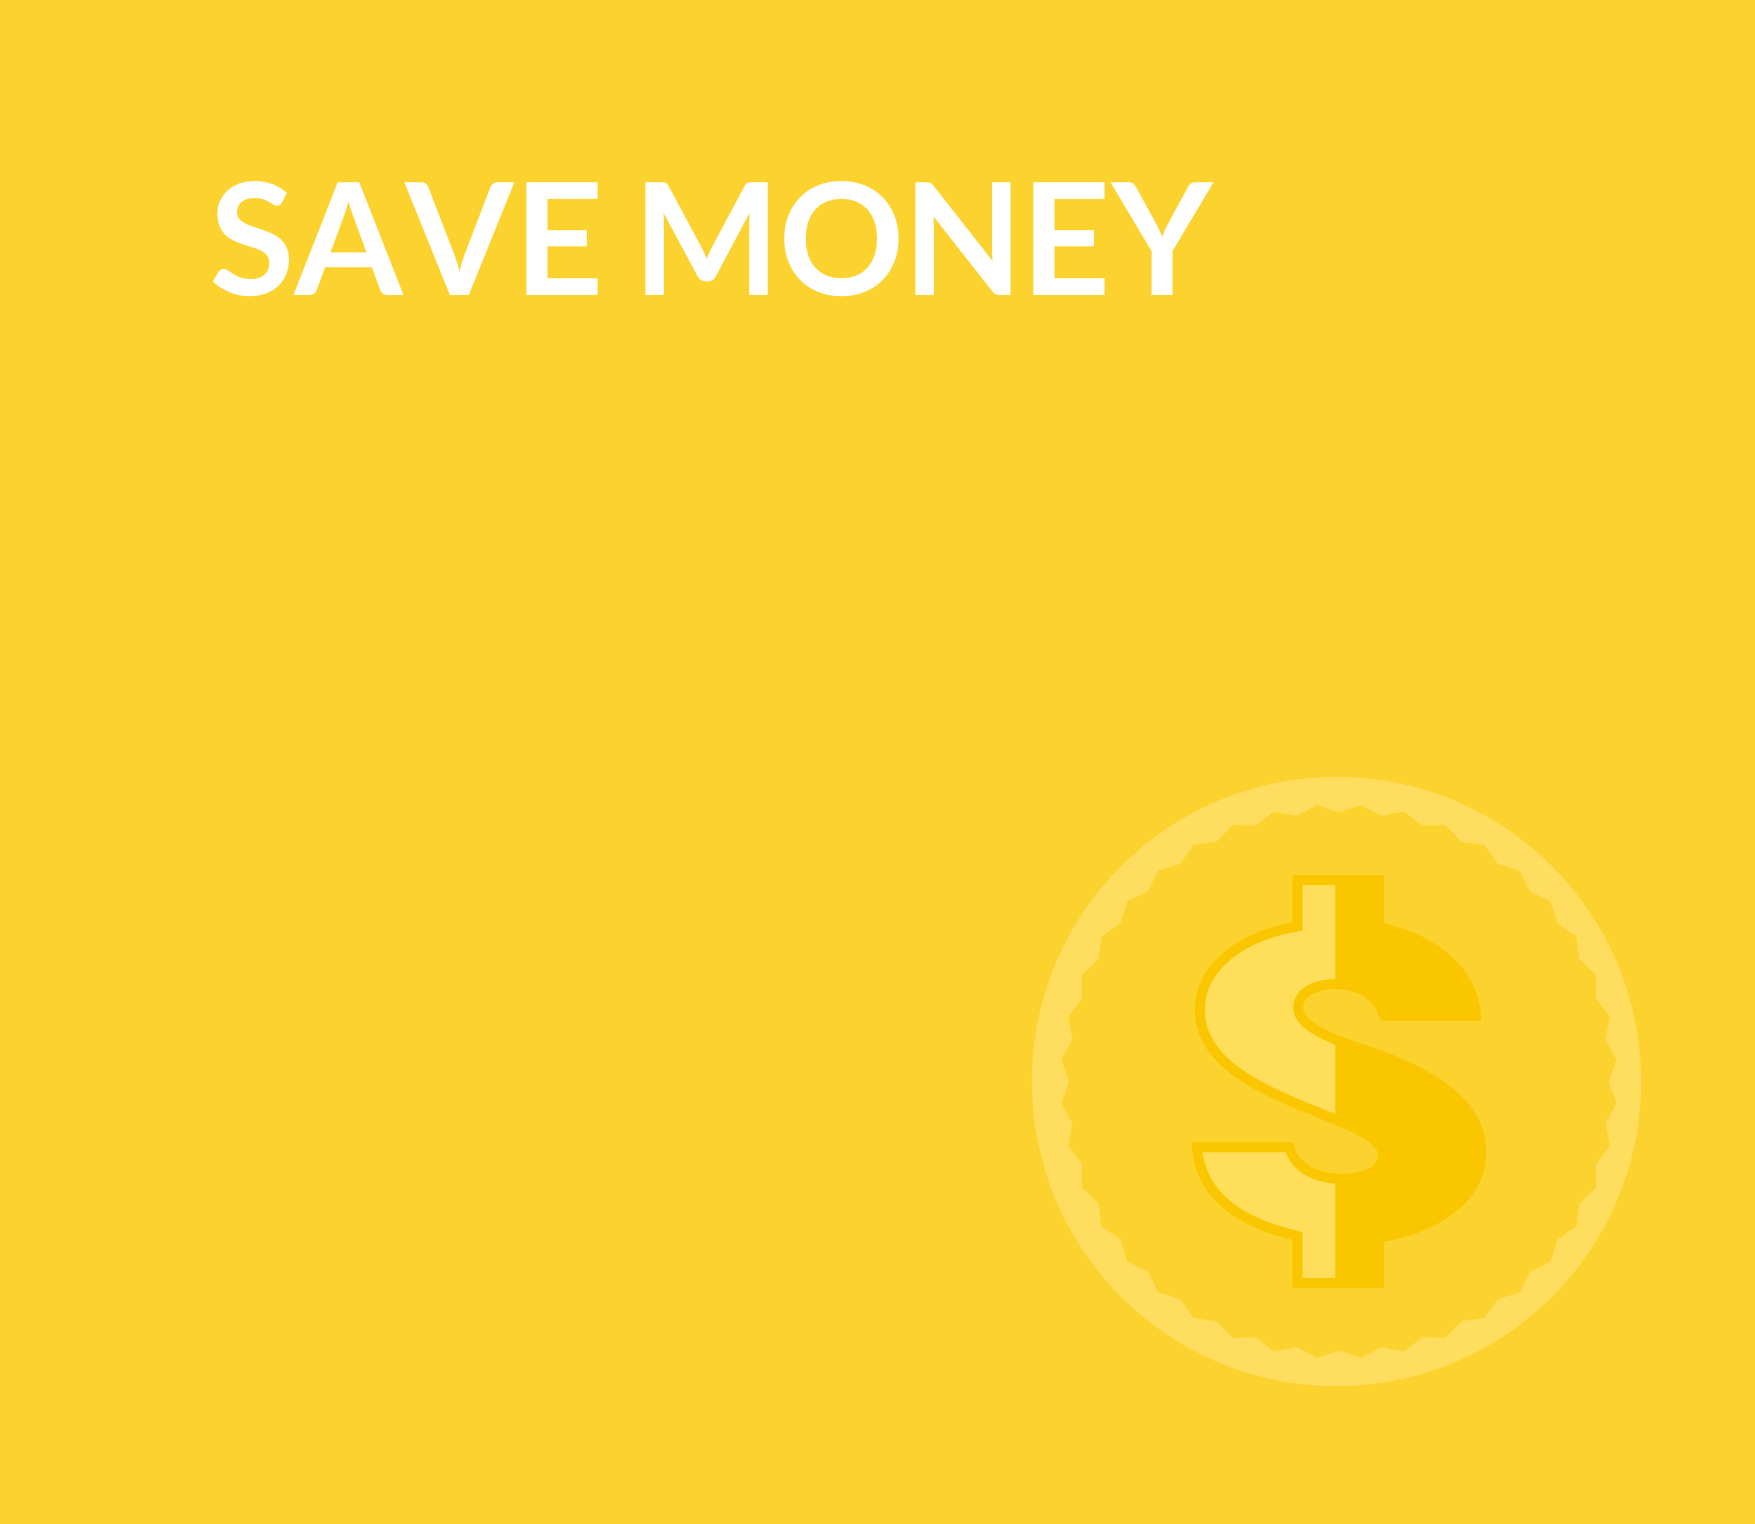 save-money-yellow@3x.png